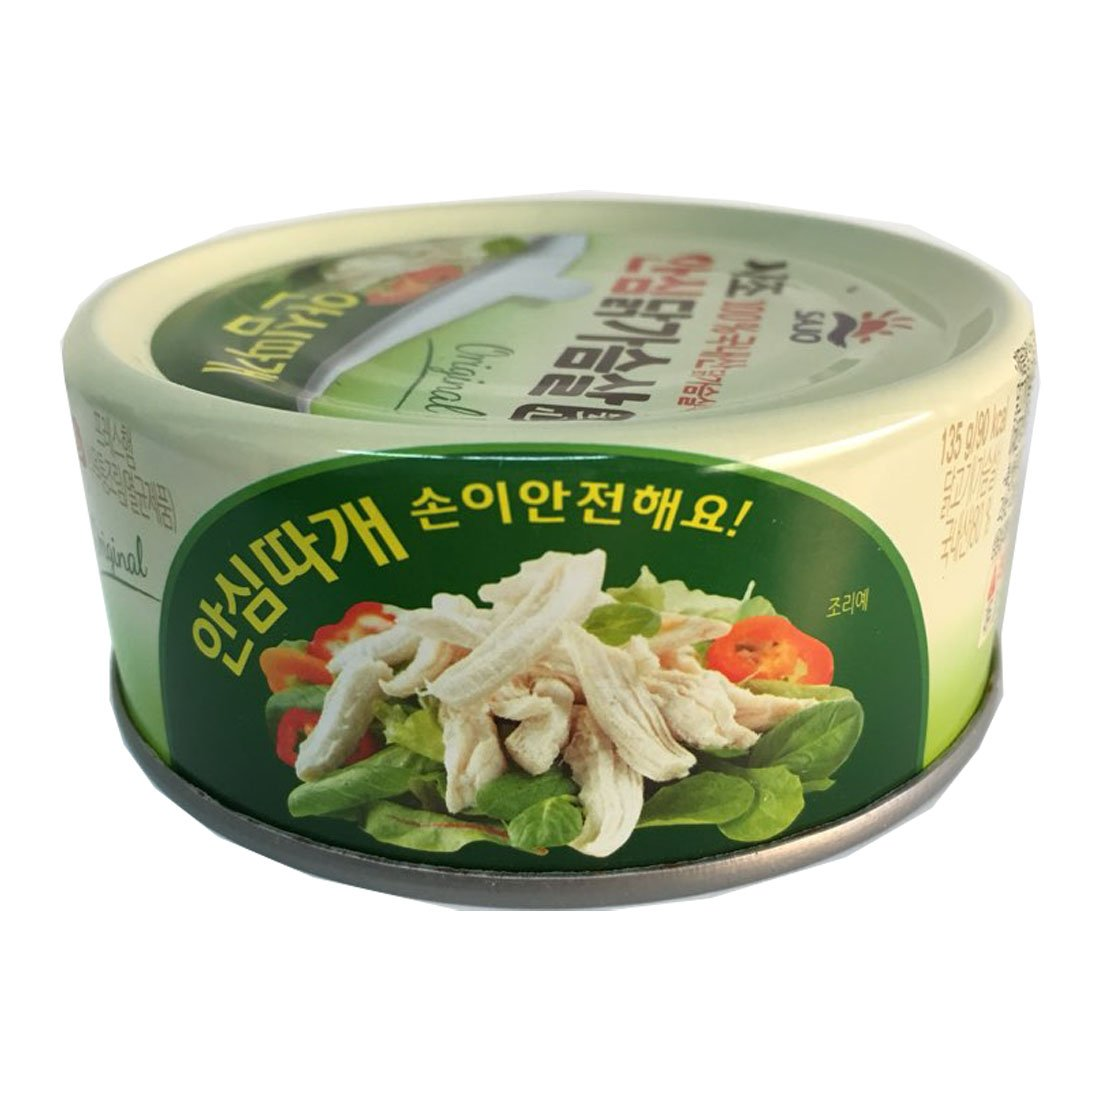 [SAJO] Korean Food canned chicken breast (4.76oz x 3pack / 135g x 3pack) + SafeZone Mask (2pcs) by Sajo (Image #2)